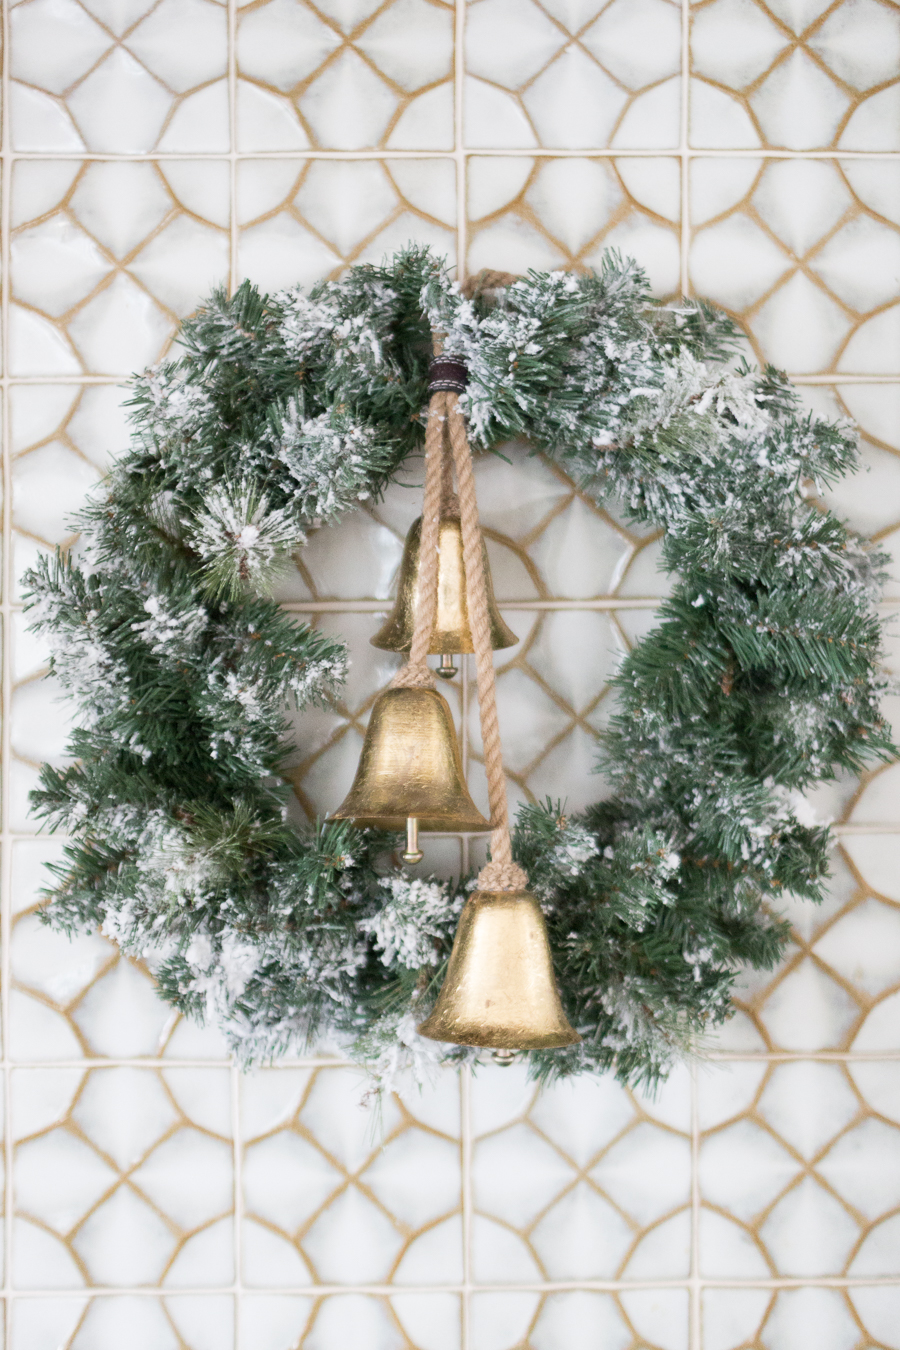 Budget Friendly Holiday Decor from Walmart affordable flocked wreaths with vintage gold bells on ceramic tile backsplash